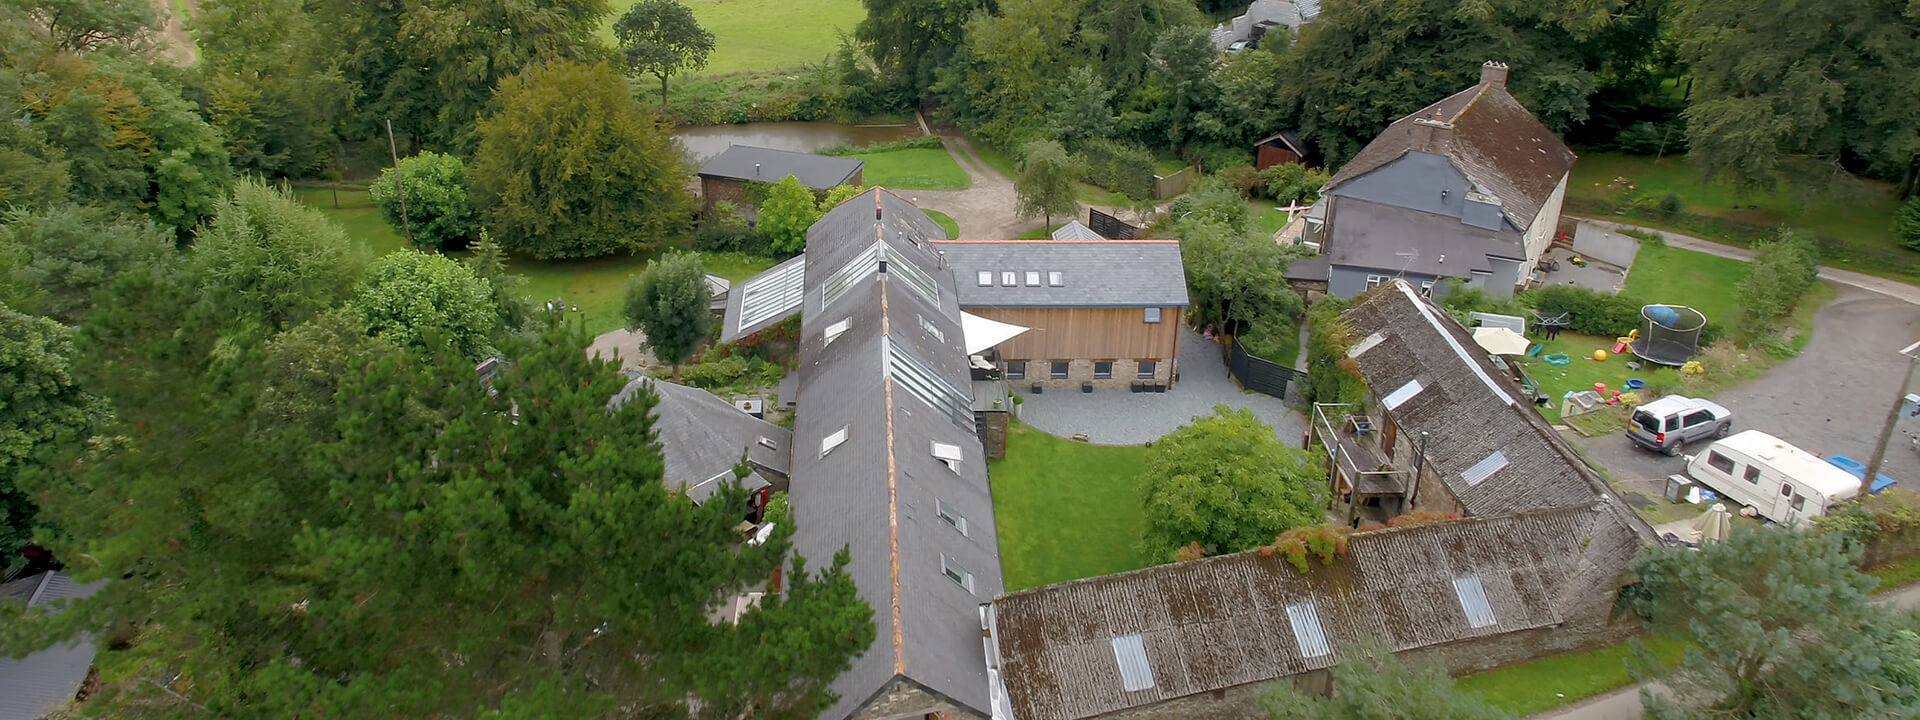 Barn conversion in Langford Barton roof windows from a bird's eye view